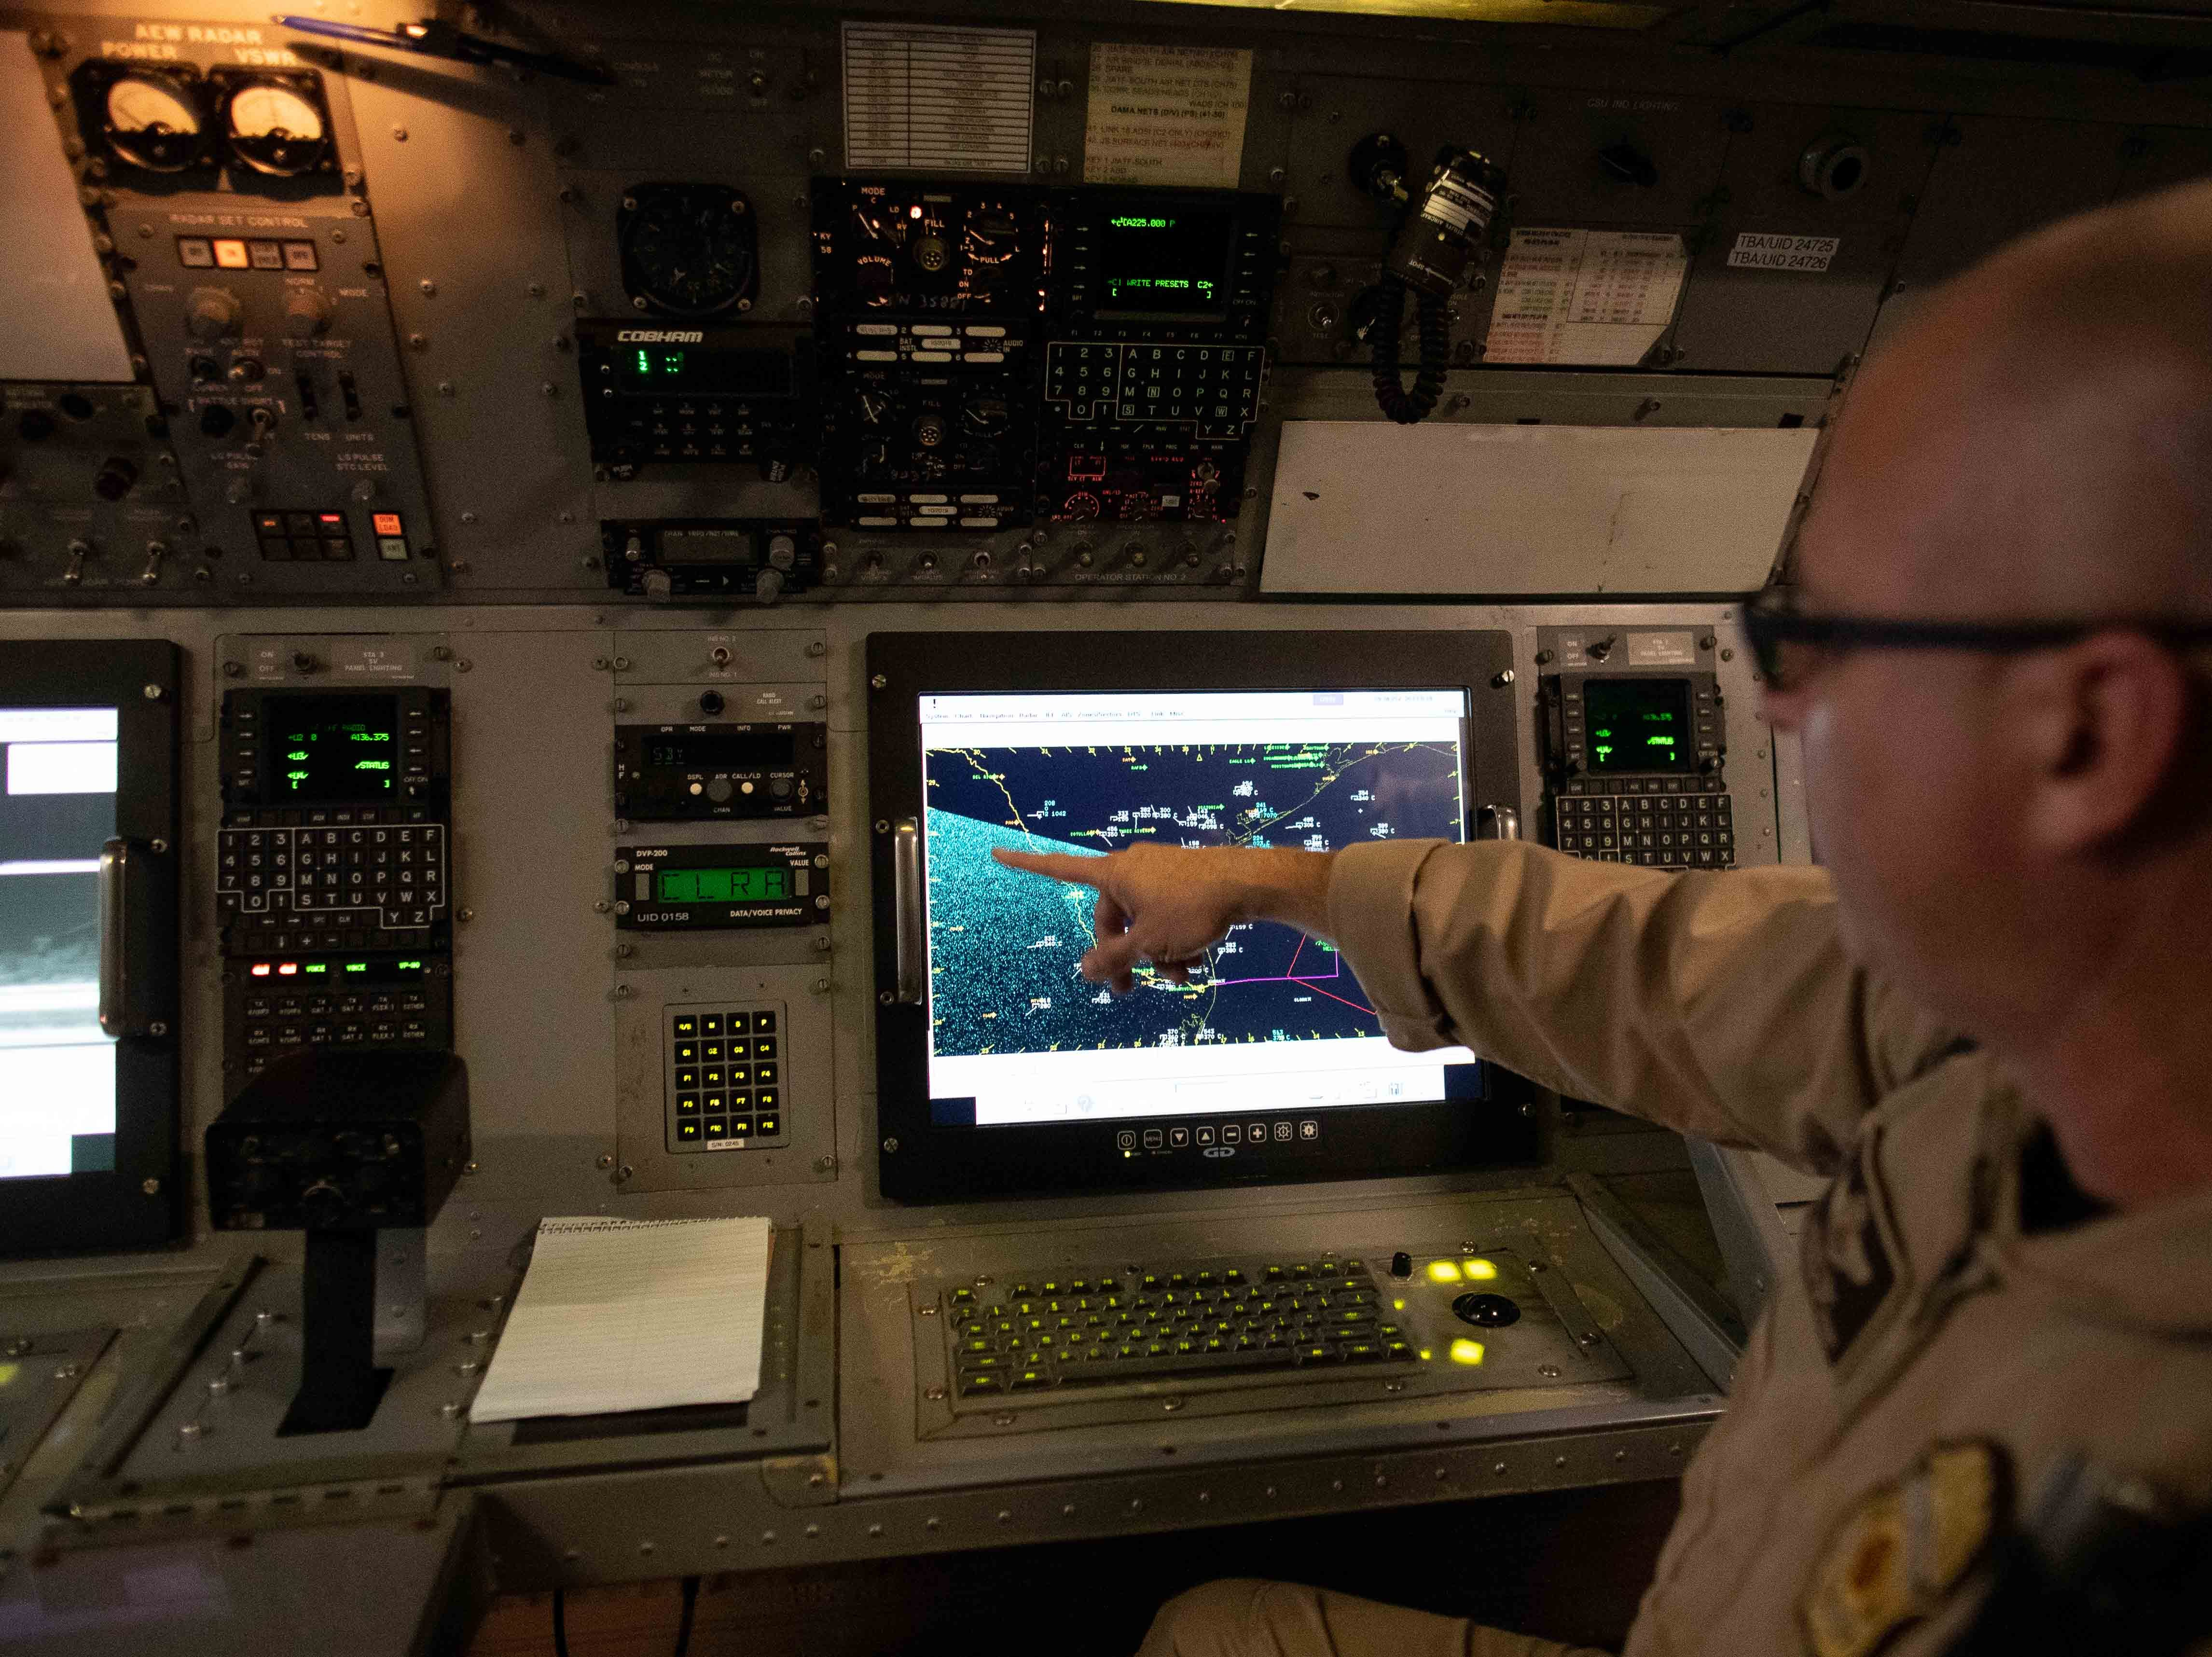 A Customs and Border Protection agent demonstrates how the radar works on a P-3 Orion aircraft at their National Air Security Operations Center on Navy Air Station Corpus Christi on Wednesday, Feb. 20, 2019.